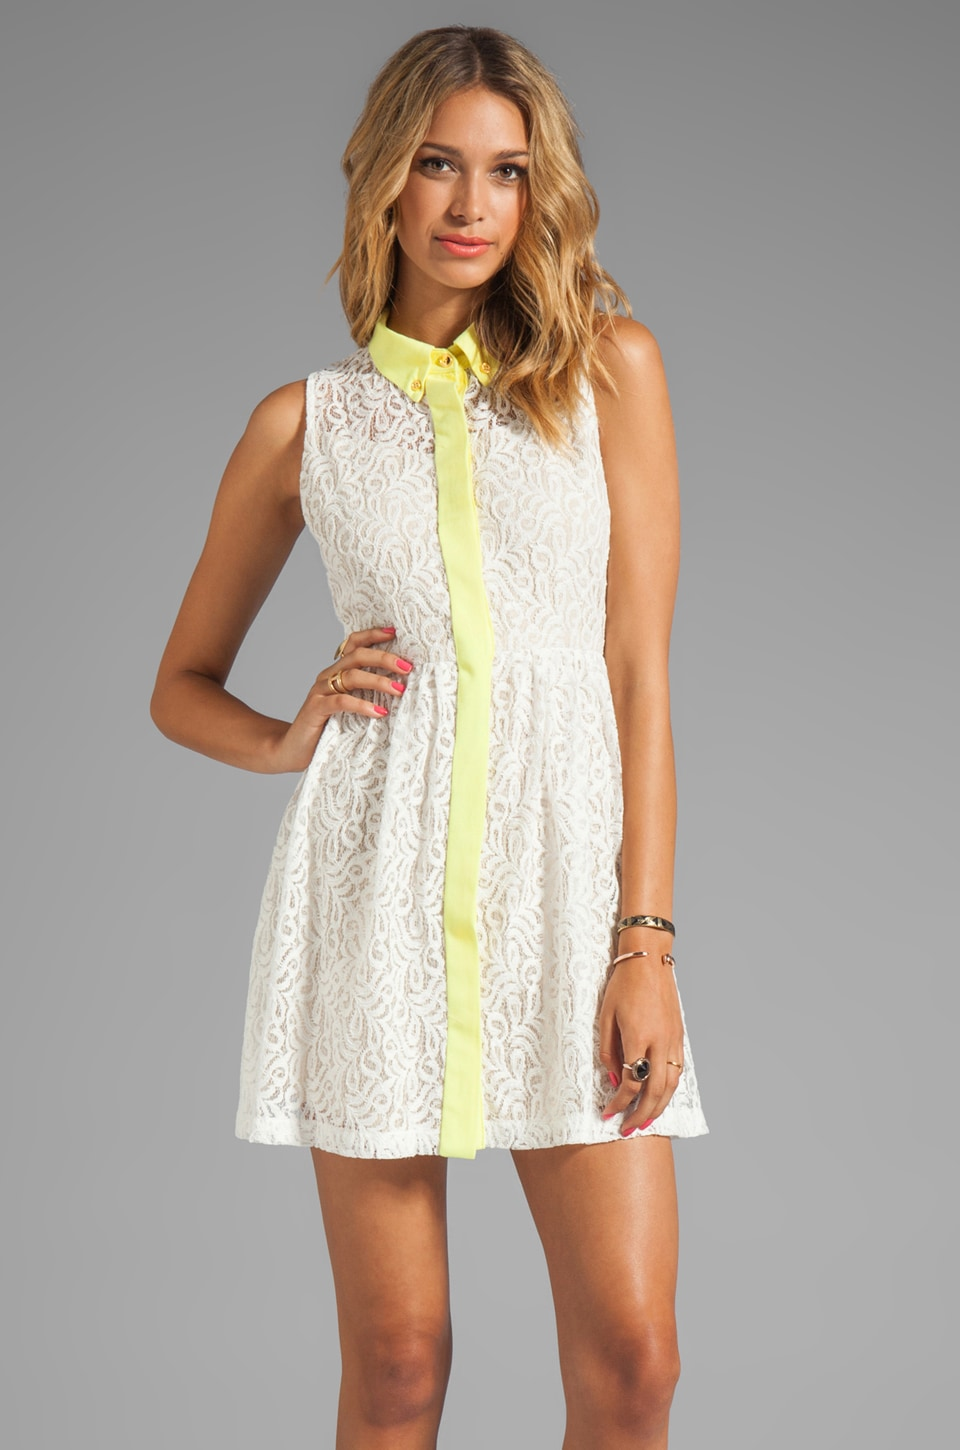 Testament Lace Oxford Dress in White/Lime